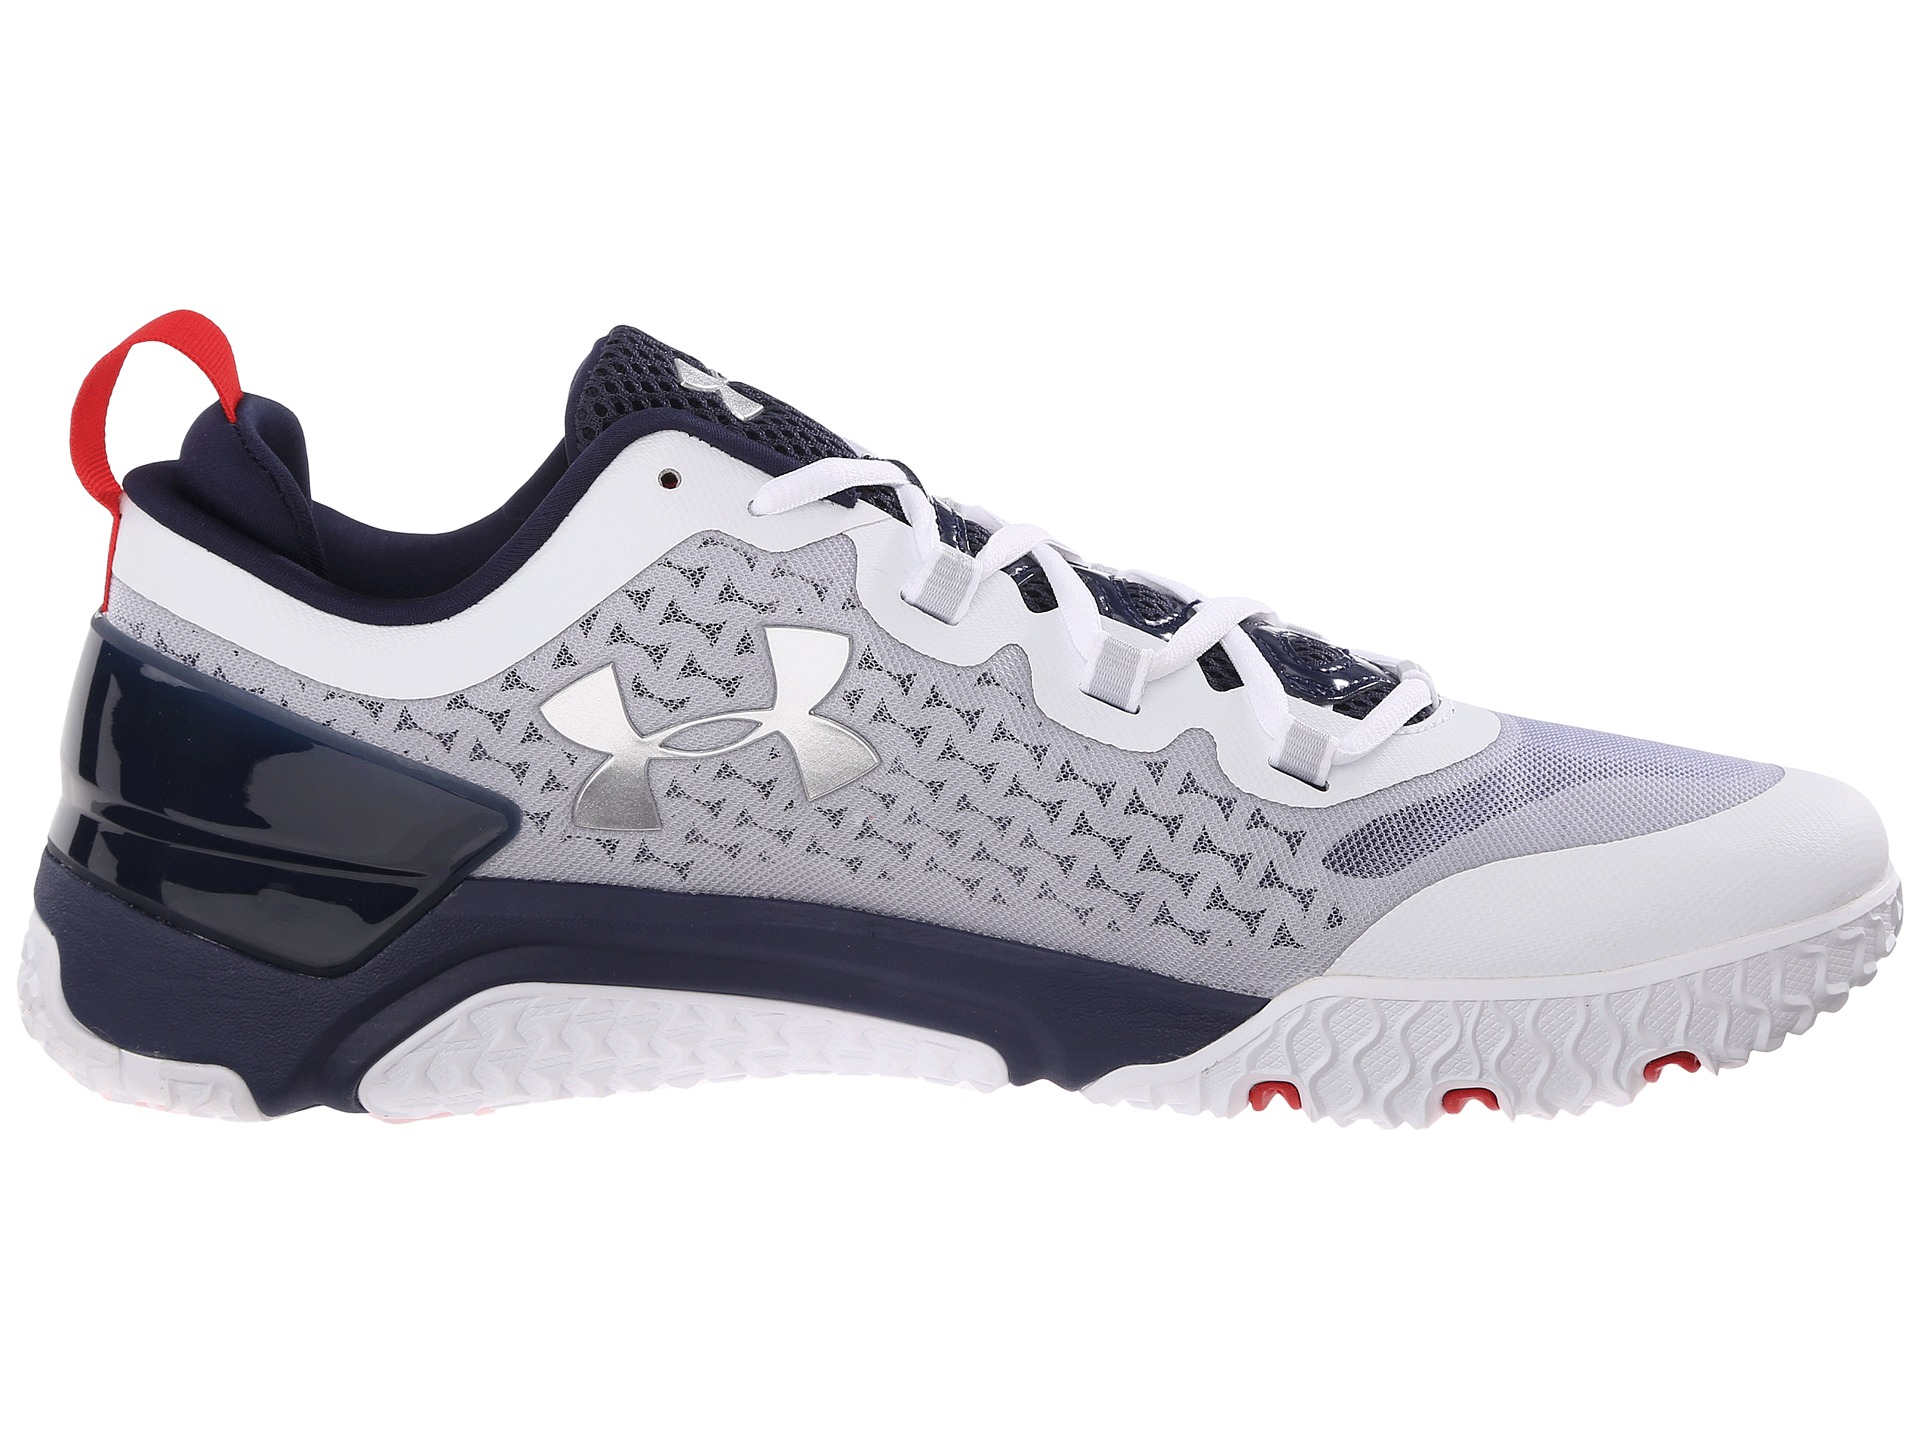 a46a63a2d2a1 Lyst - Under Armour Ua Charged Ultimate Tr Low in White for Men